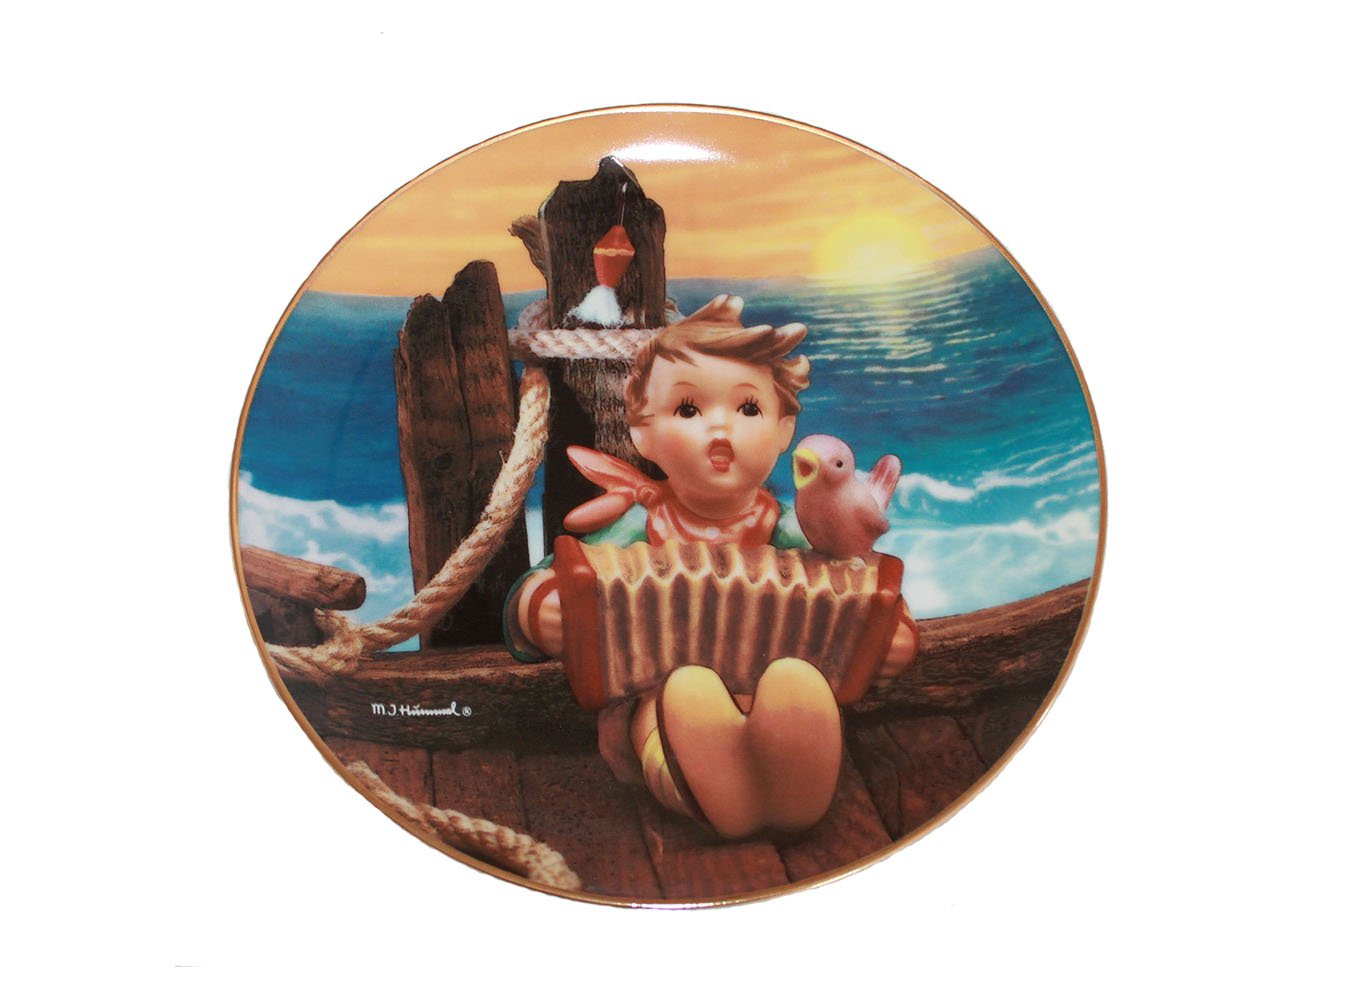 """Let's Sing by M. I. Hummel 8 1/4"""""""" Collectible Plate 23k Gold Rim w/COA 1993"""